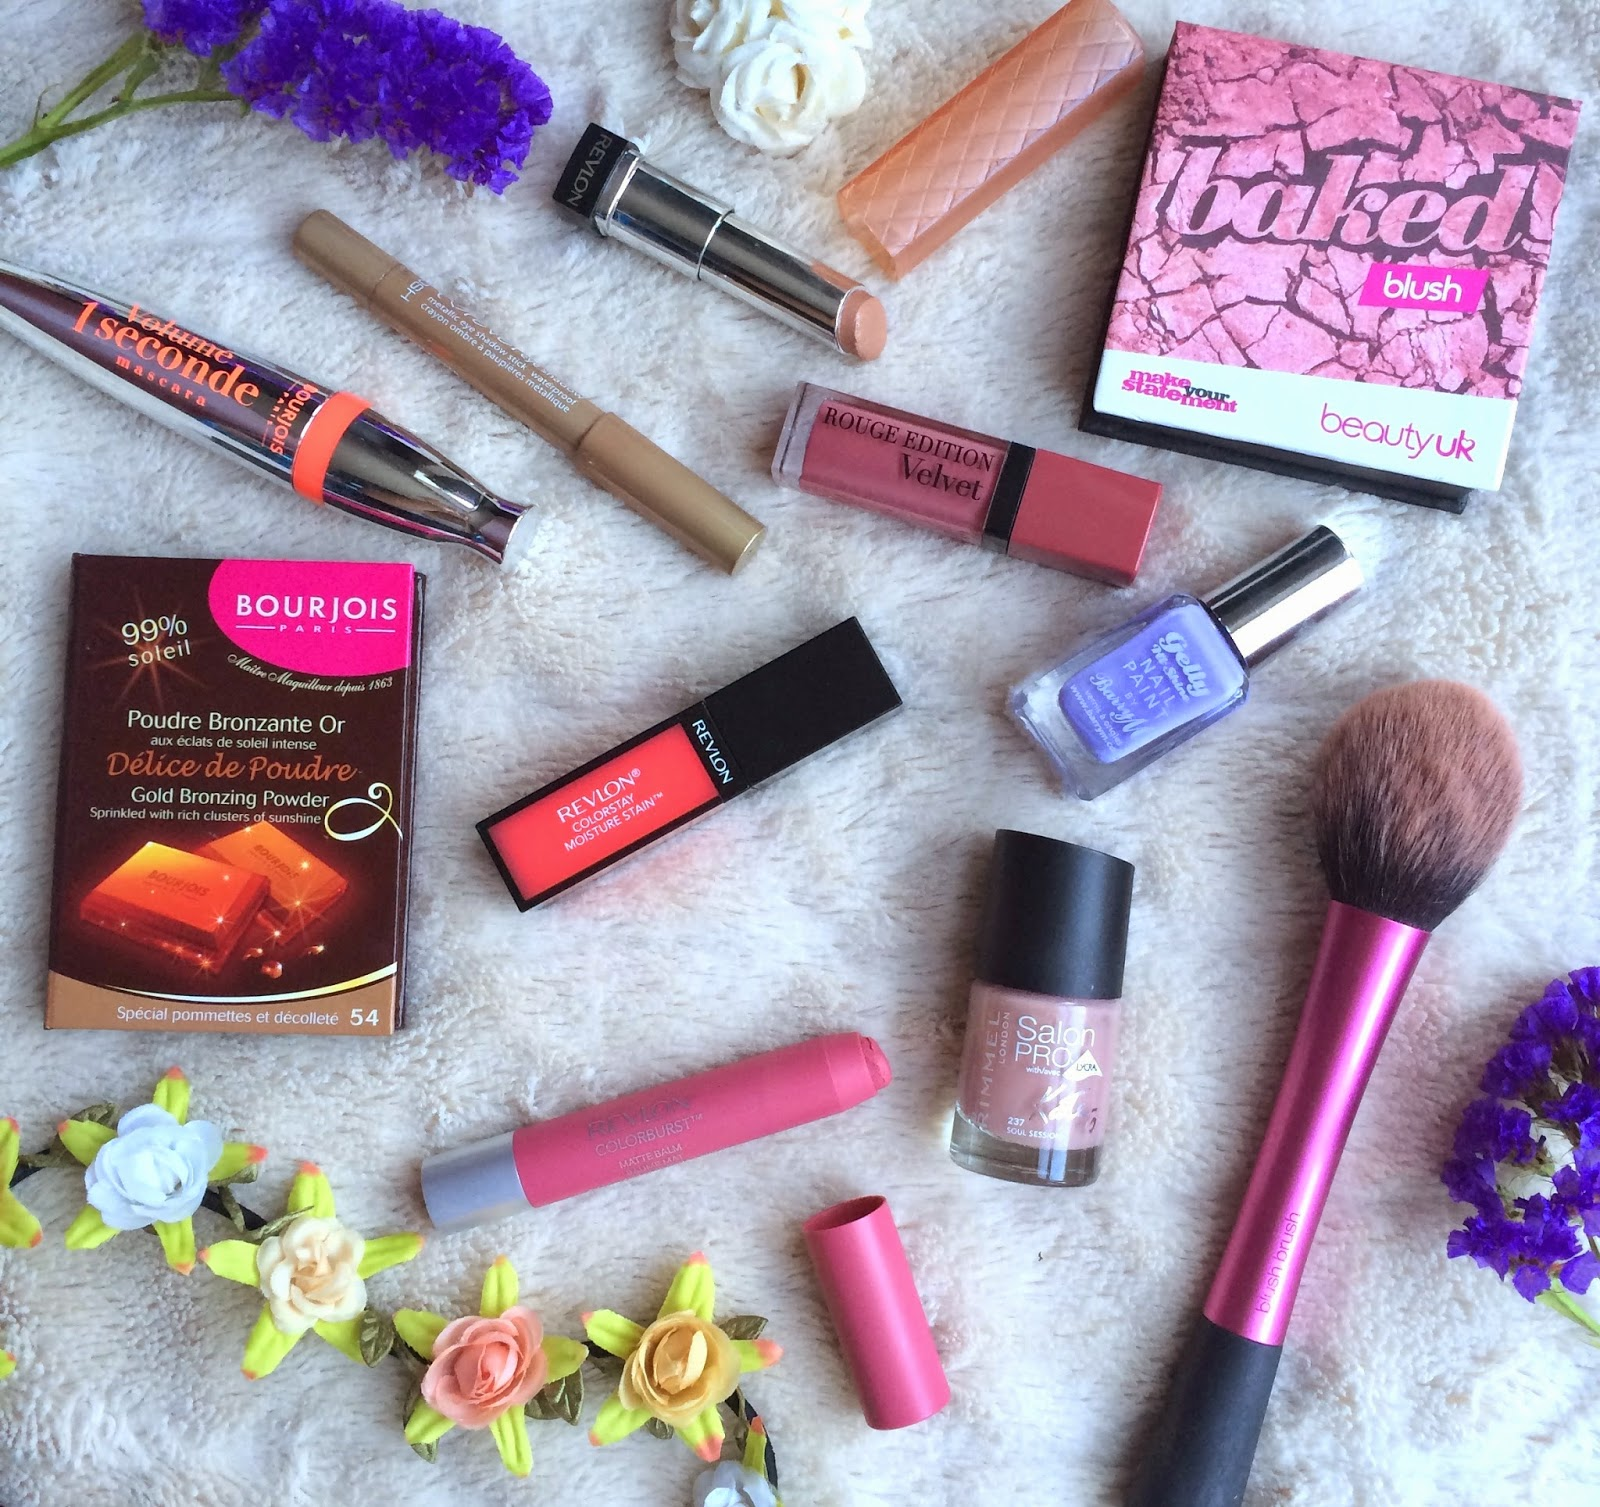 revlon-beauty-uk-blush--rimmel-salon-pro-bourjois-under-£10-review